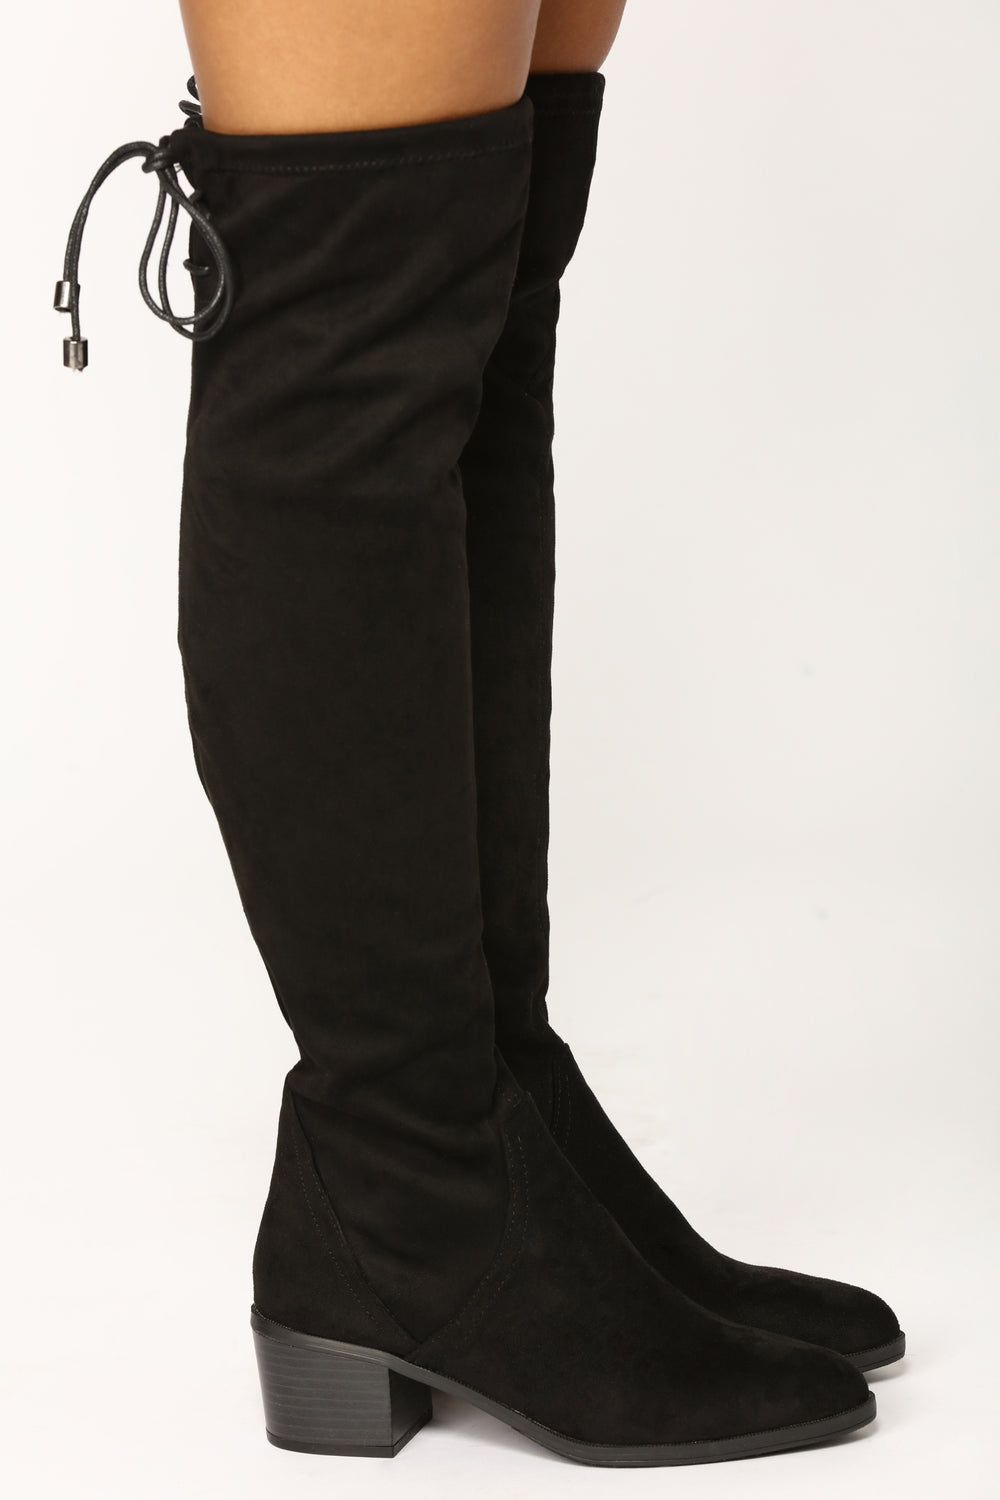 Simply Suede Boot - Black